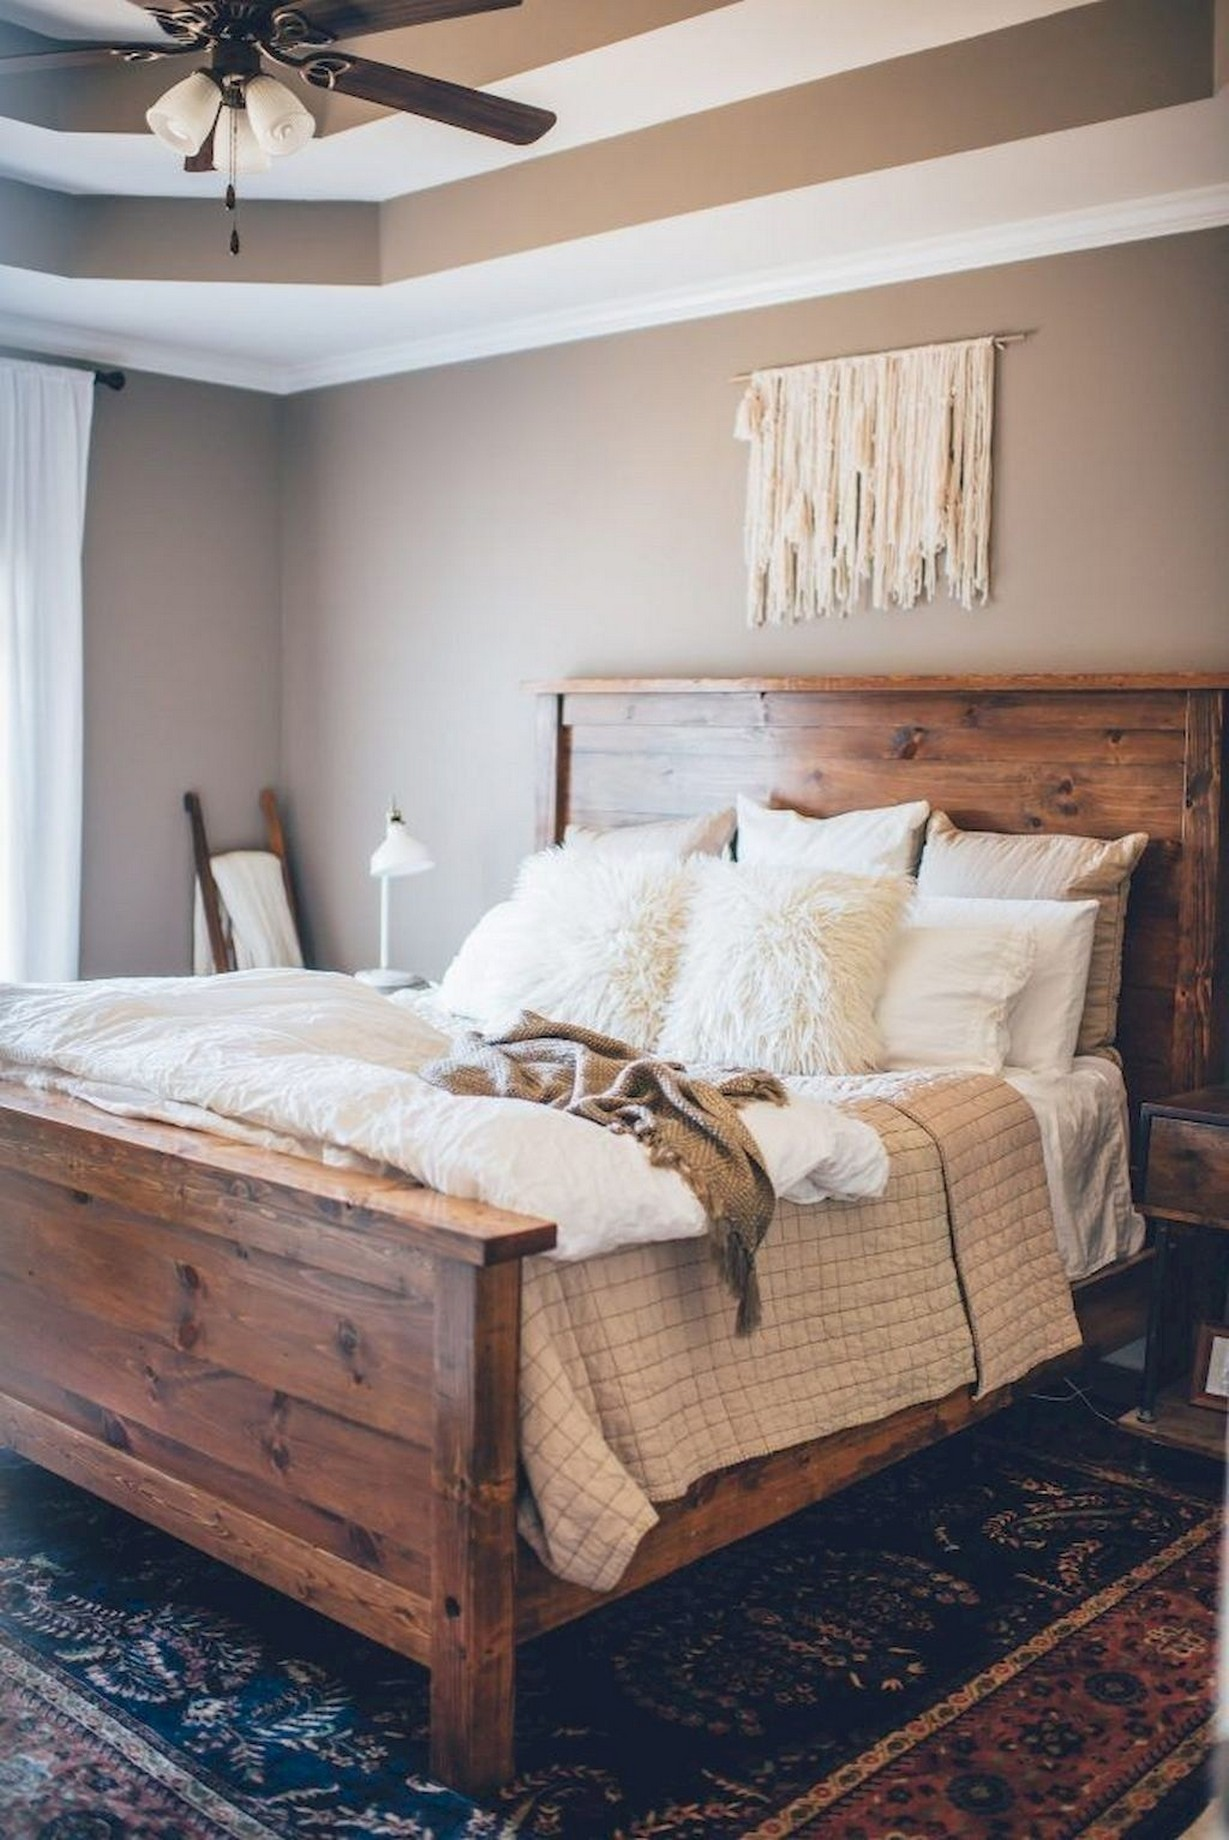 64 Rustic Bedroom Furniture How to Look Elegance Home Decor 52